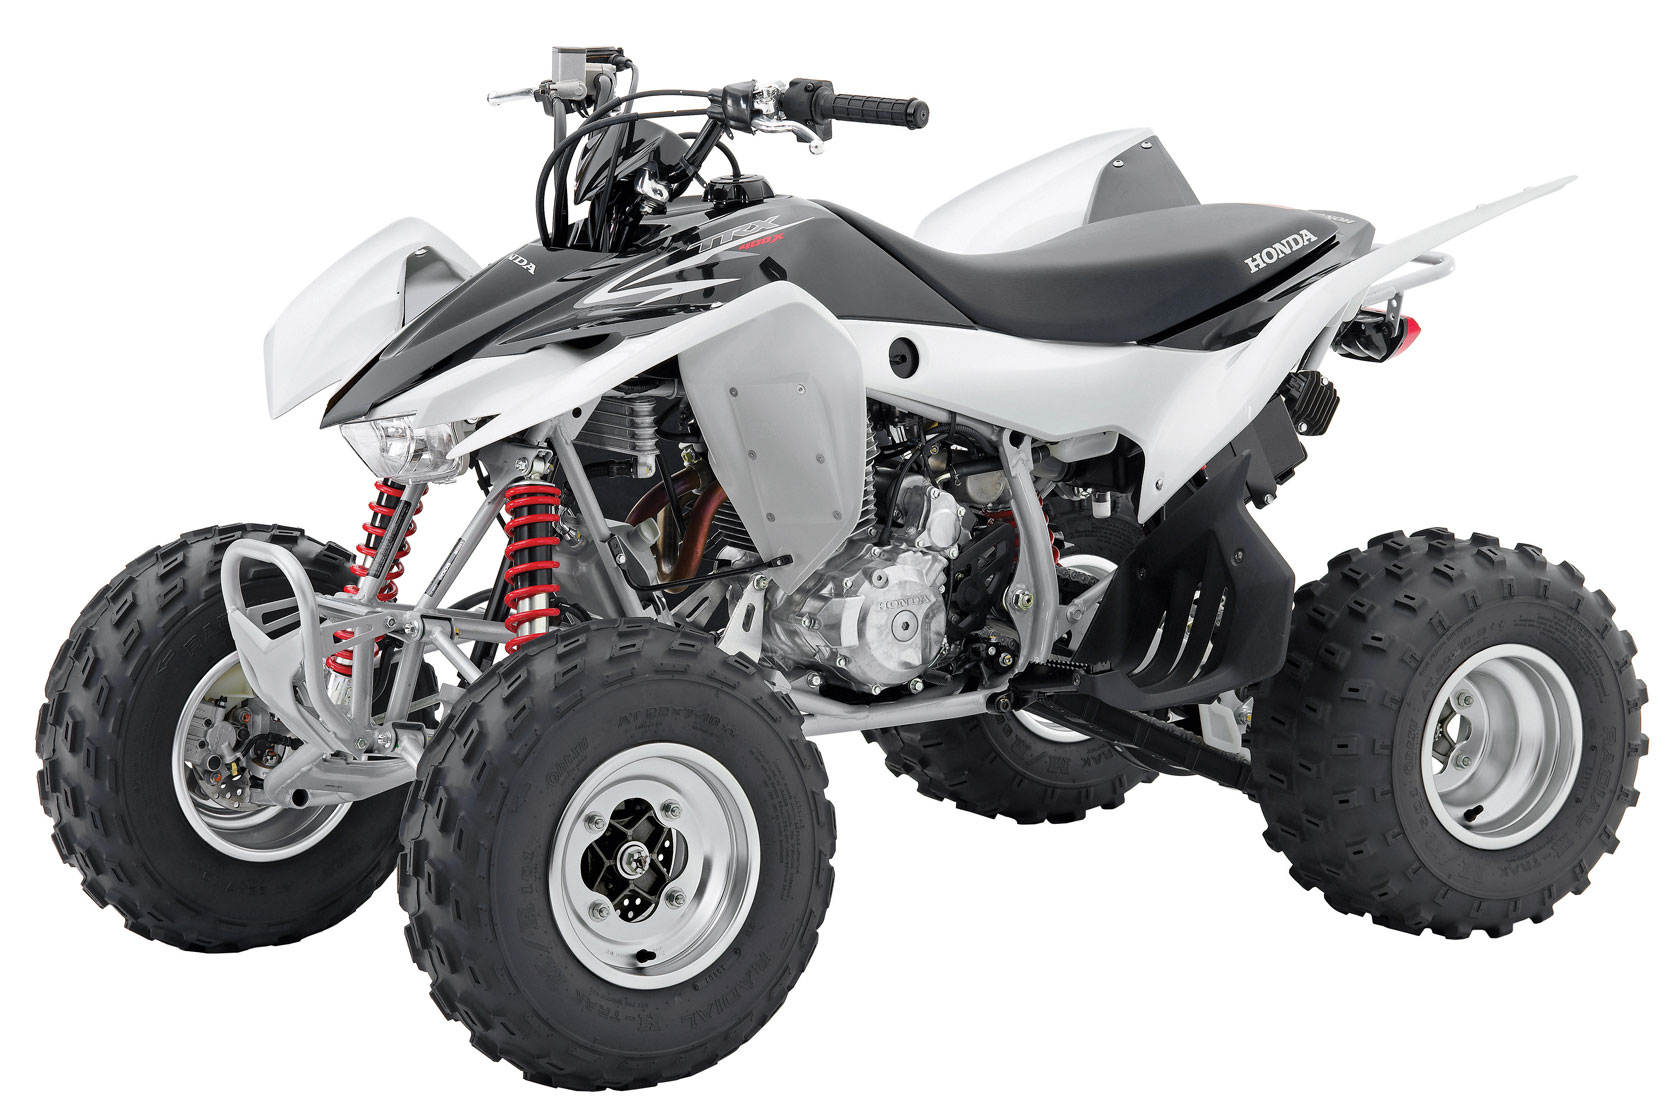 ATV Mud Tires from a3rfaktar.ml Don't let the end of the trail hold you back. Aggressively treaded mud tires for your ATV give you maximum traction on loose, wet surfaces, so you can ride wherever you need to .